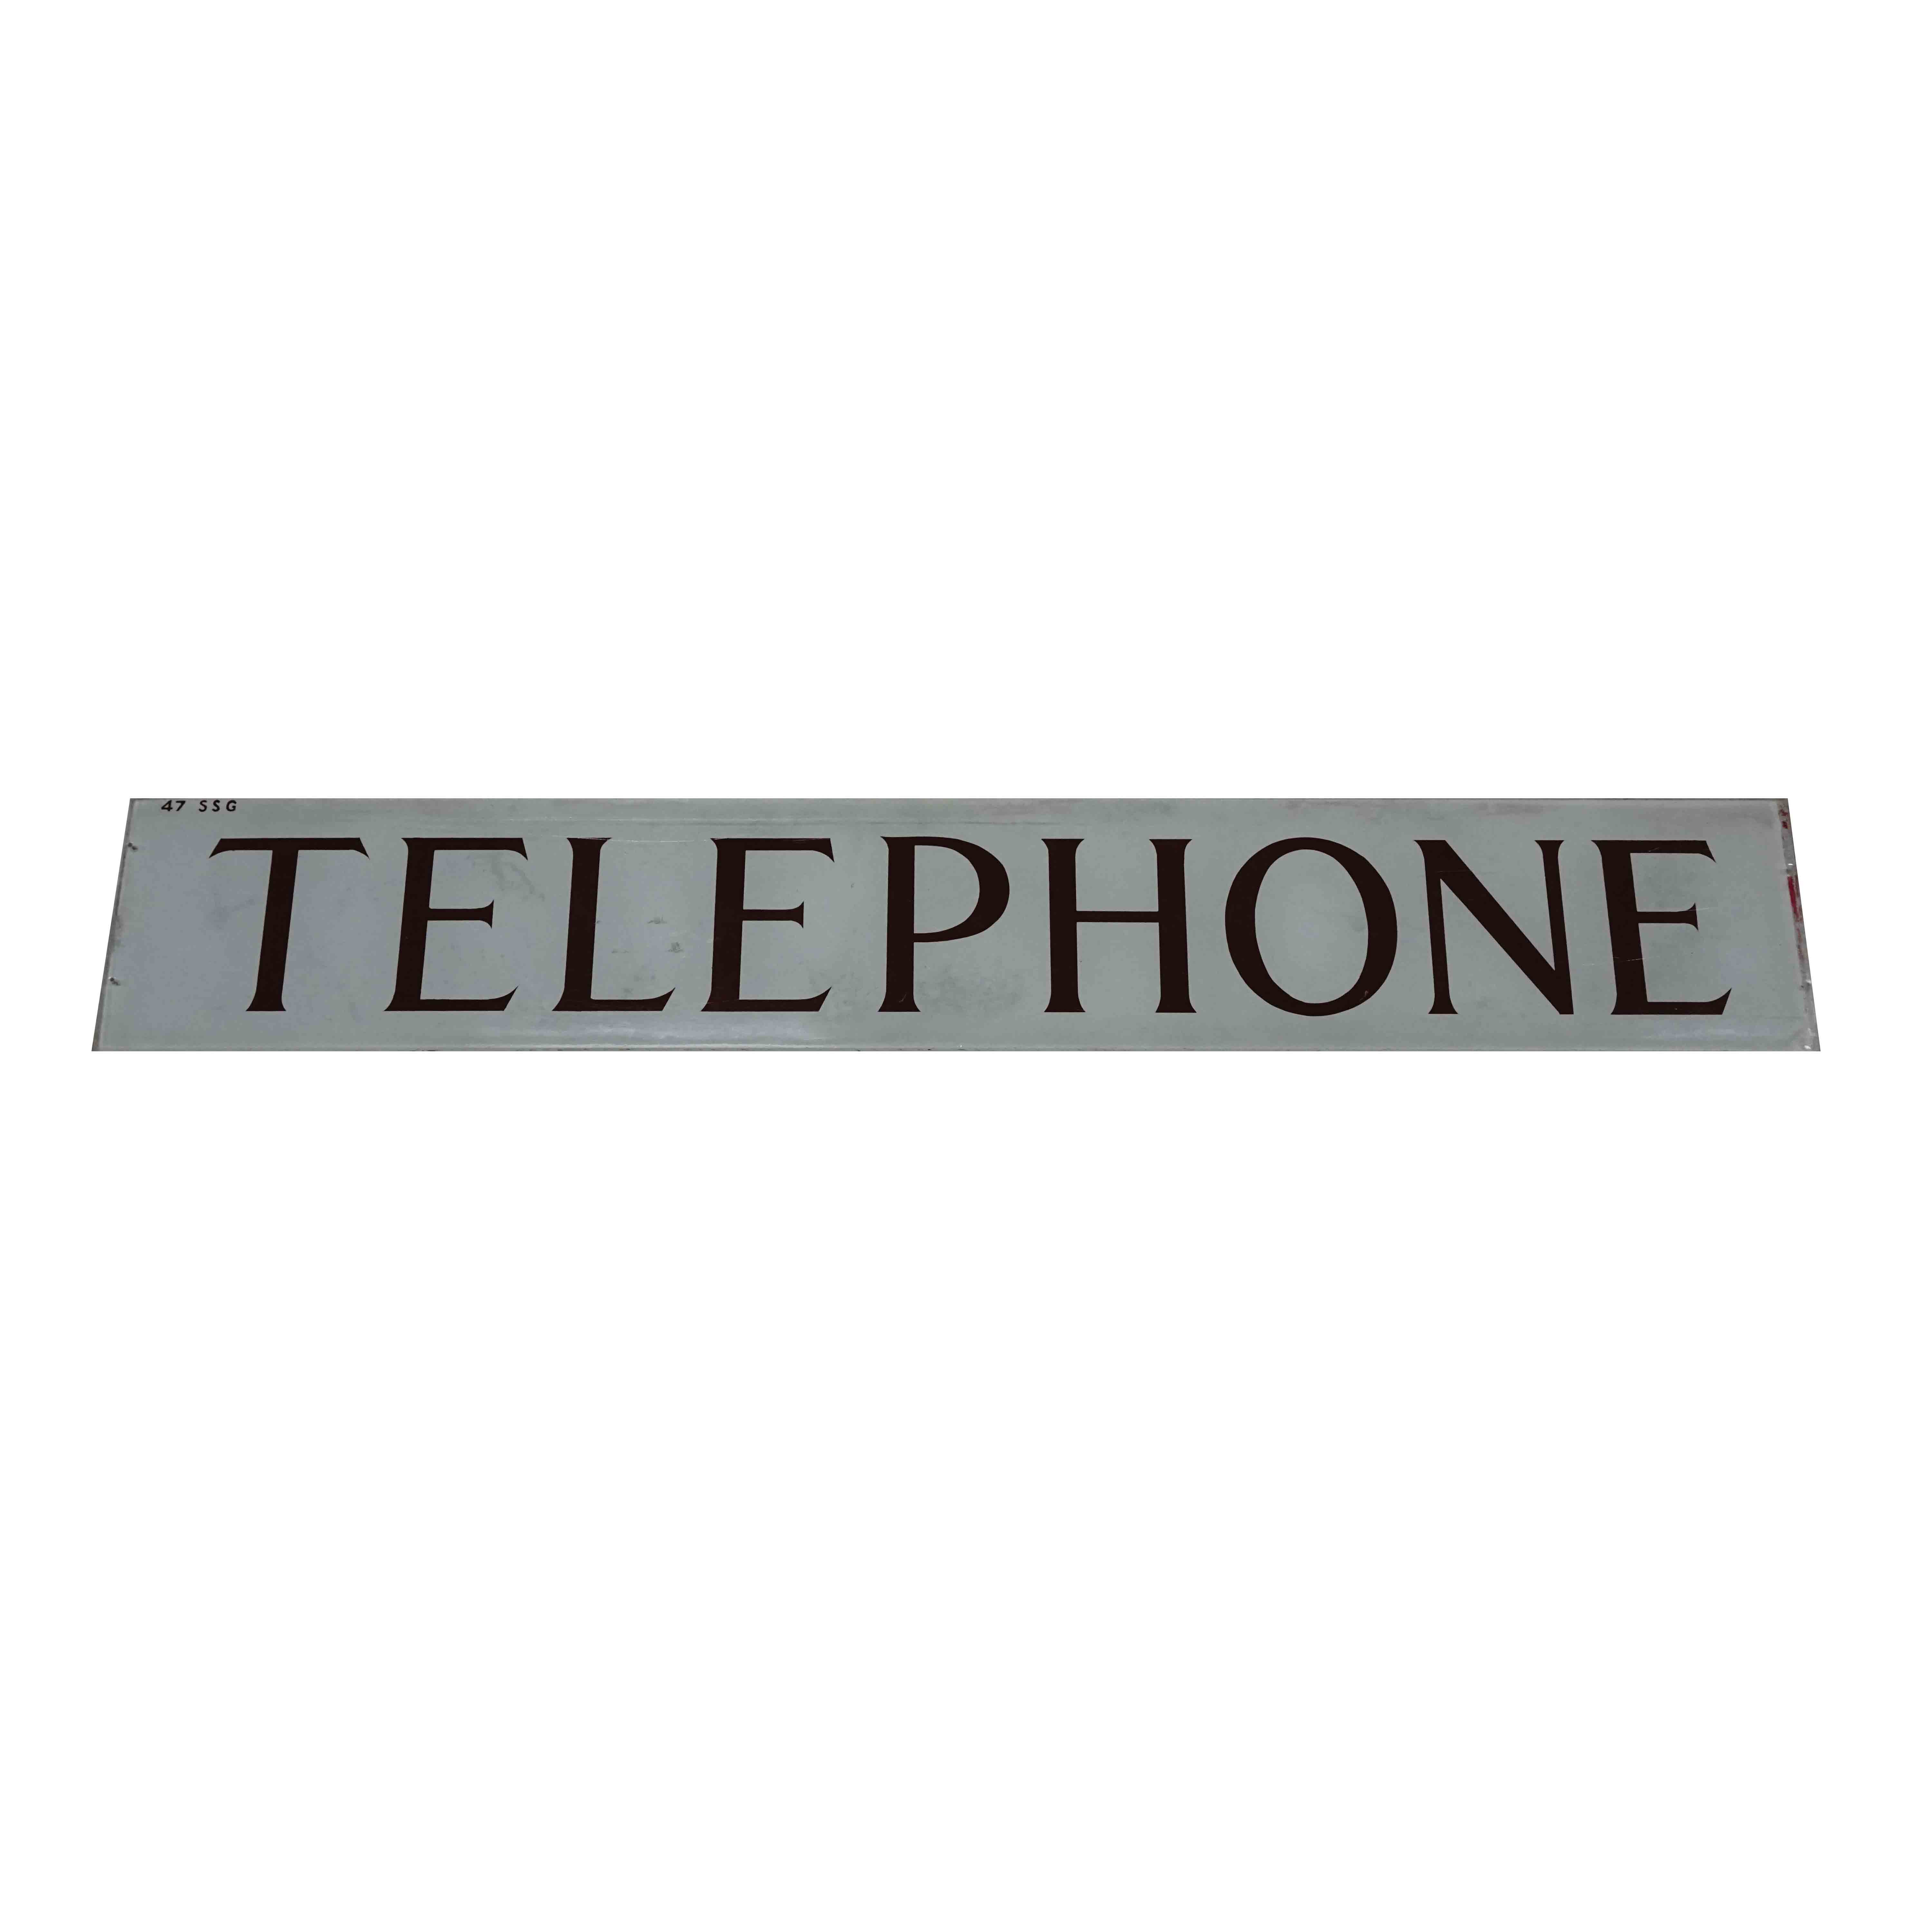 ORIGINAL GLASS TELEPHONE SIGN